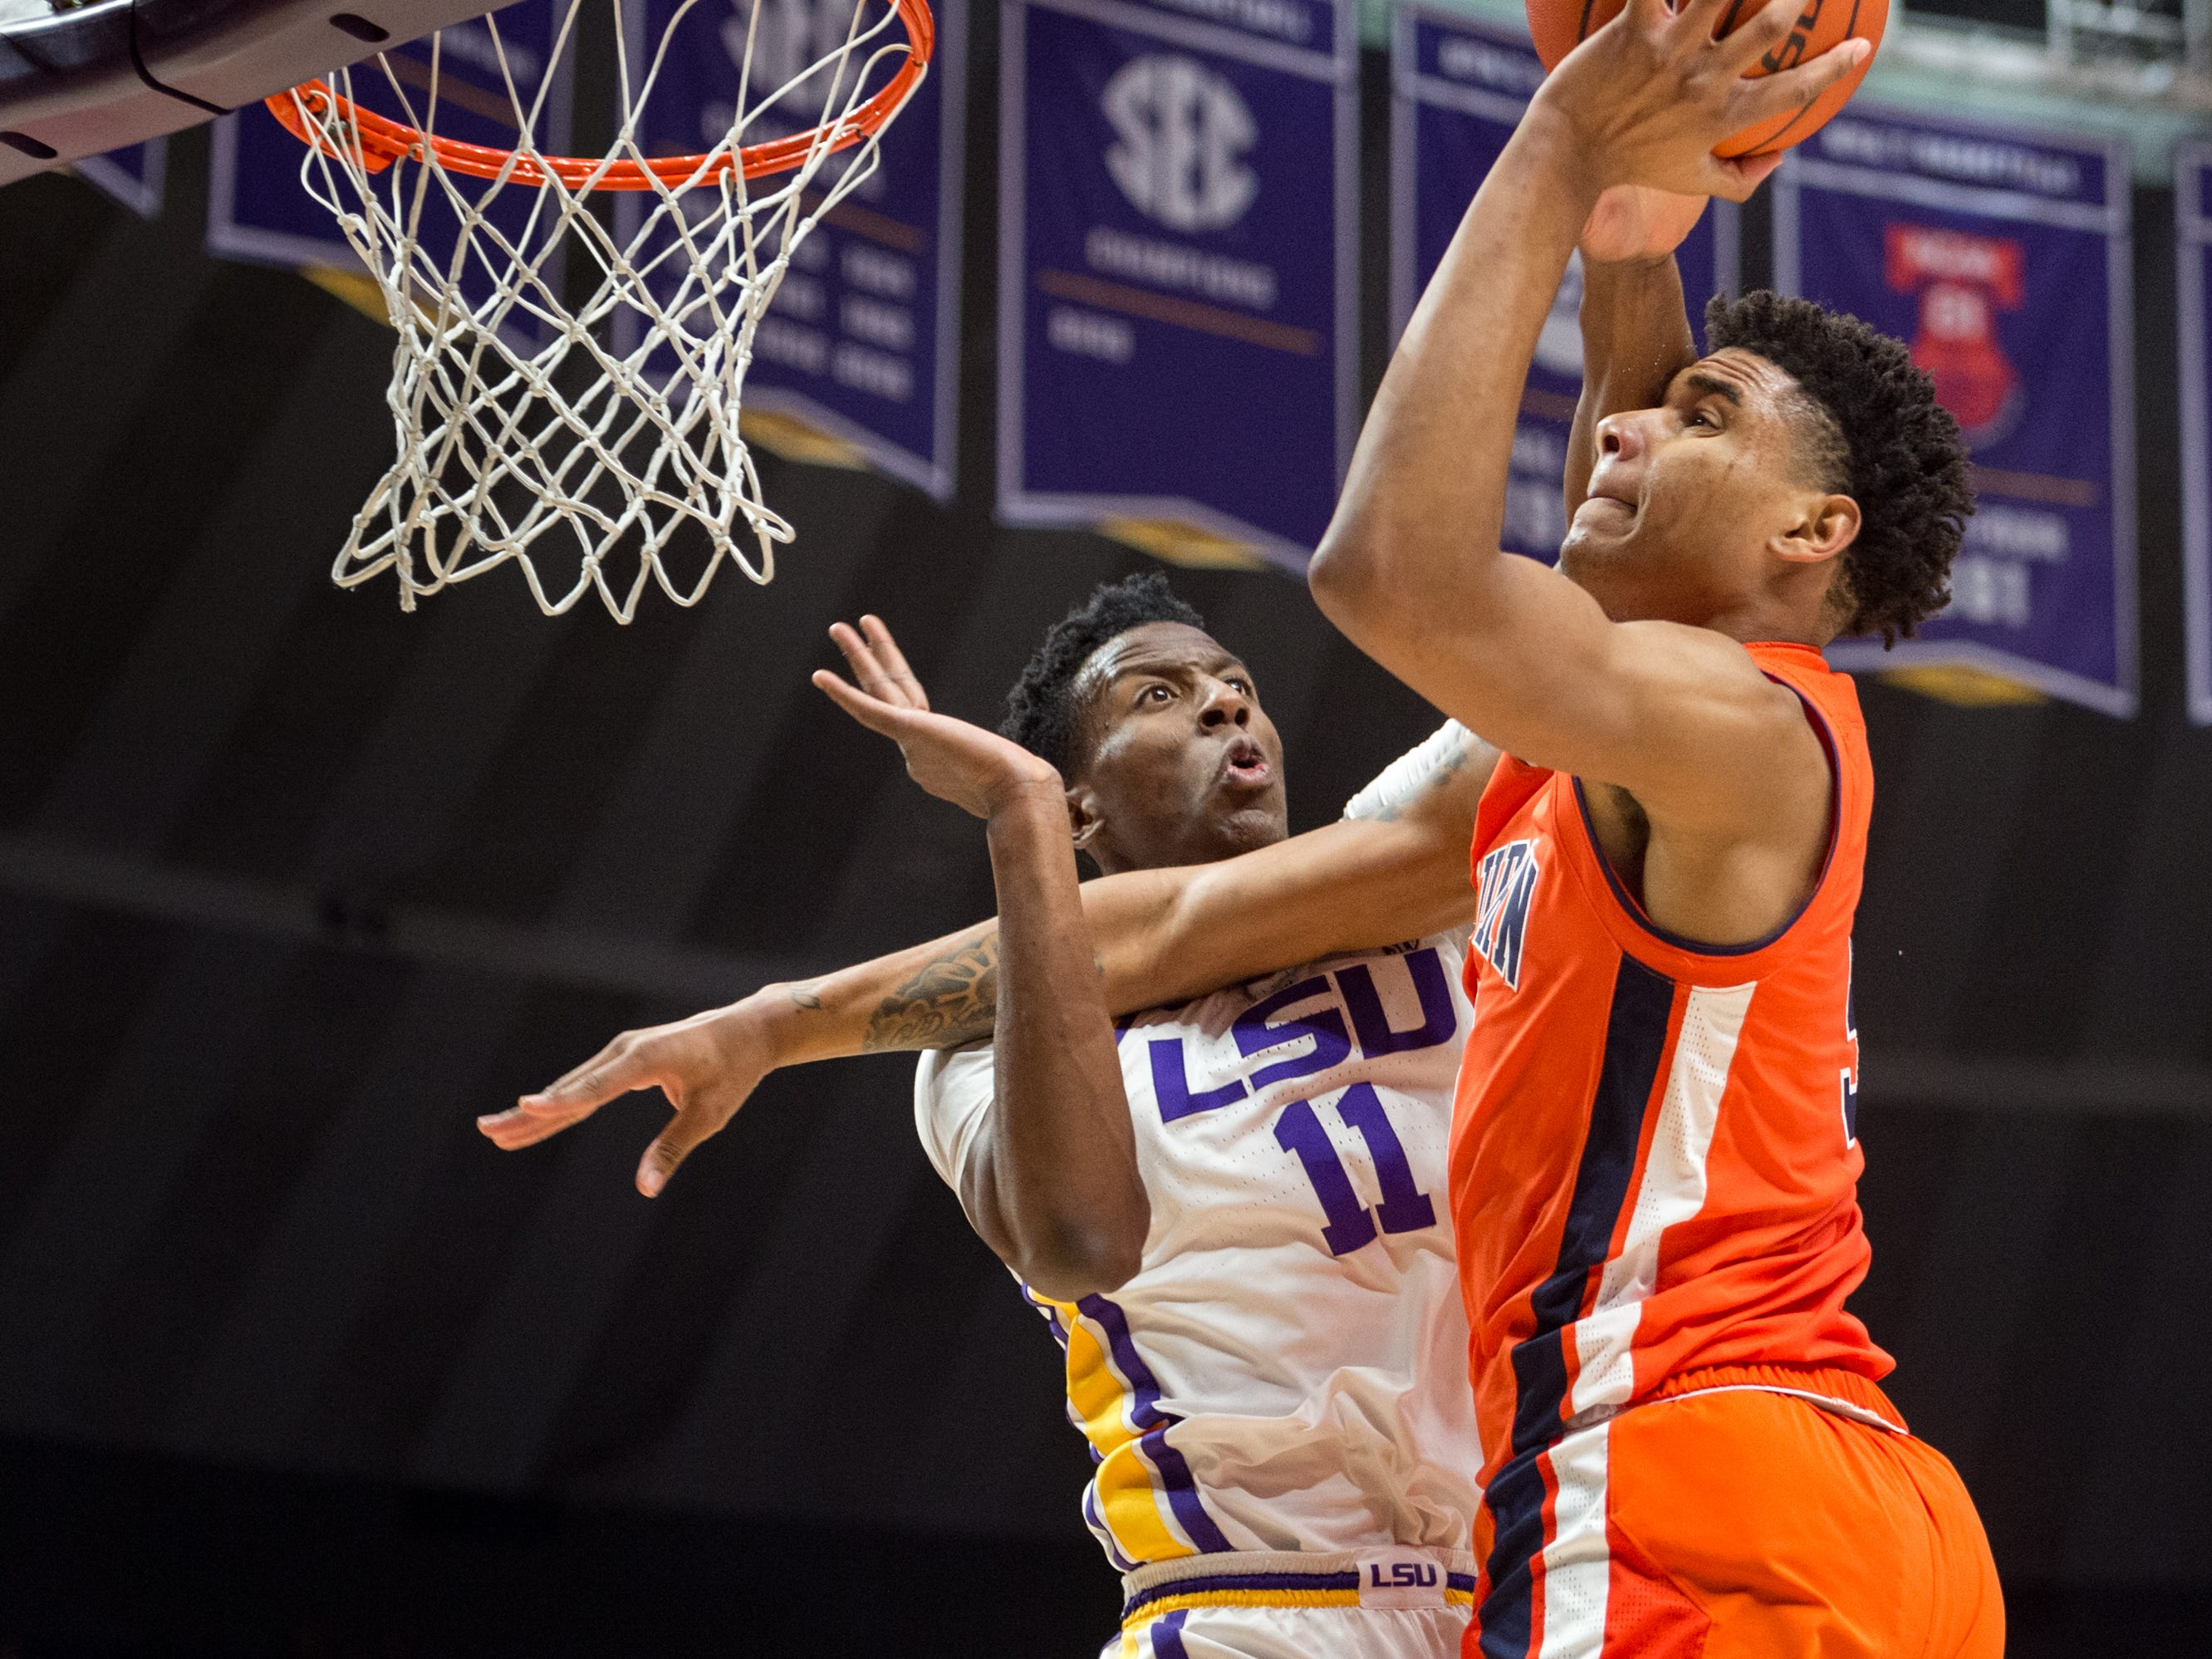 Chuma Okeke takes a shot over Kavell Bigby-Williams as the LSU Tigers take down the Auburn Tigers 83-78. Saturday, Feb. 9, 2019.